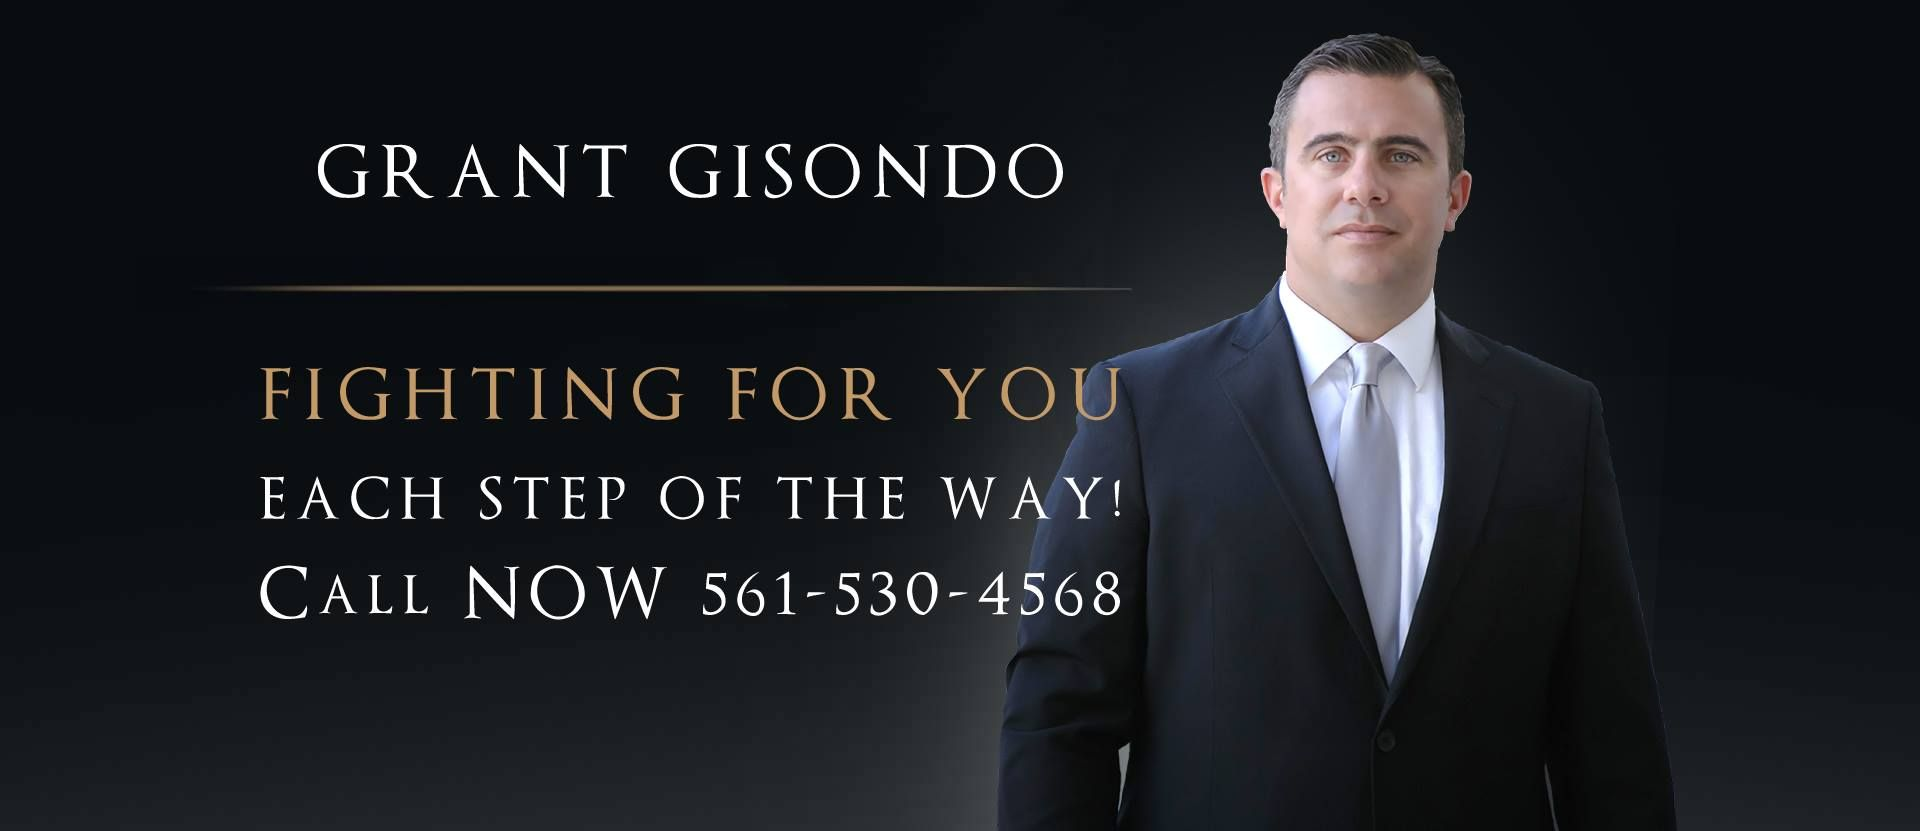 1e5a3bd674436a924250f88fa32da8d5 - Law Firms In Palm Beach Gardens Fl